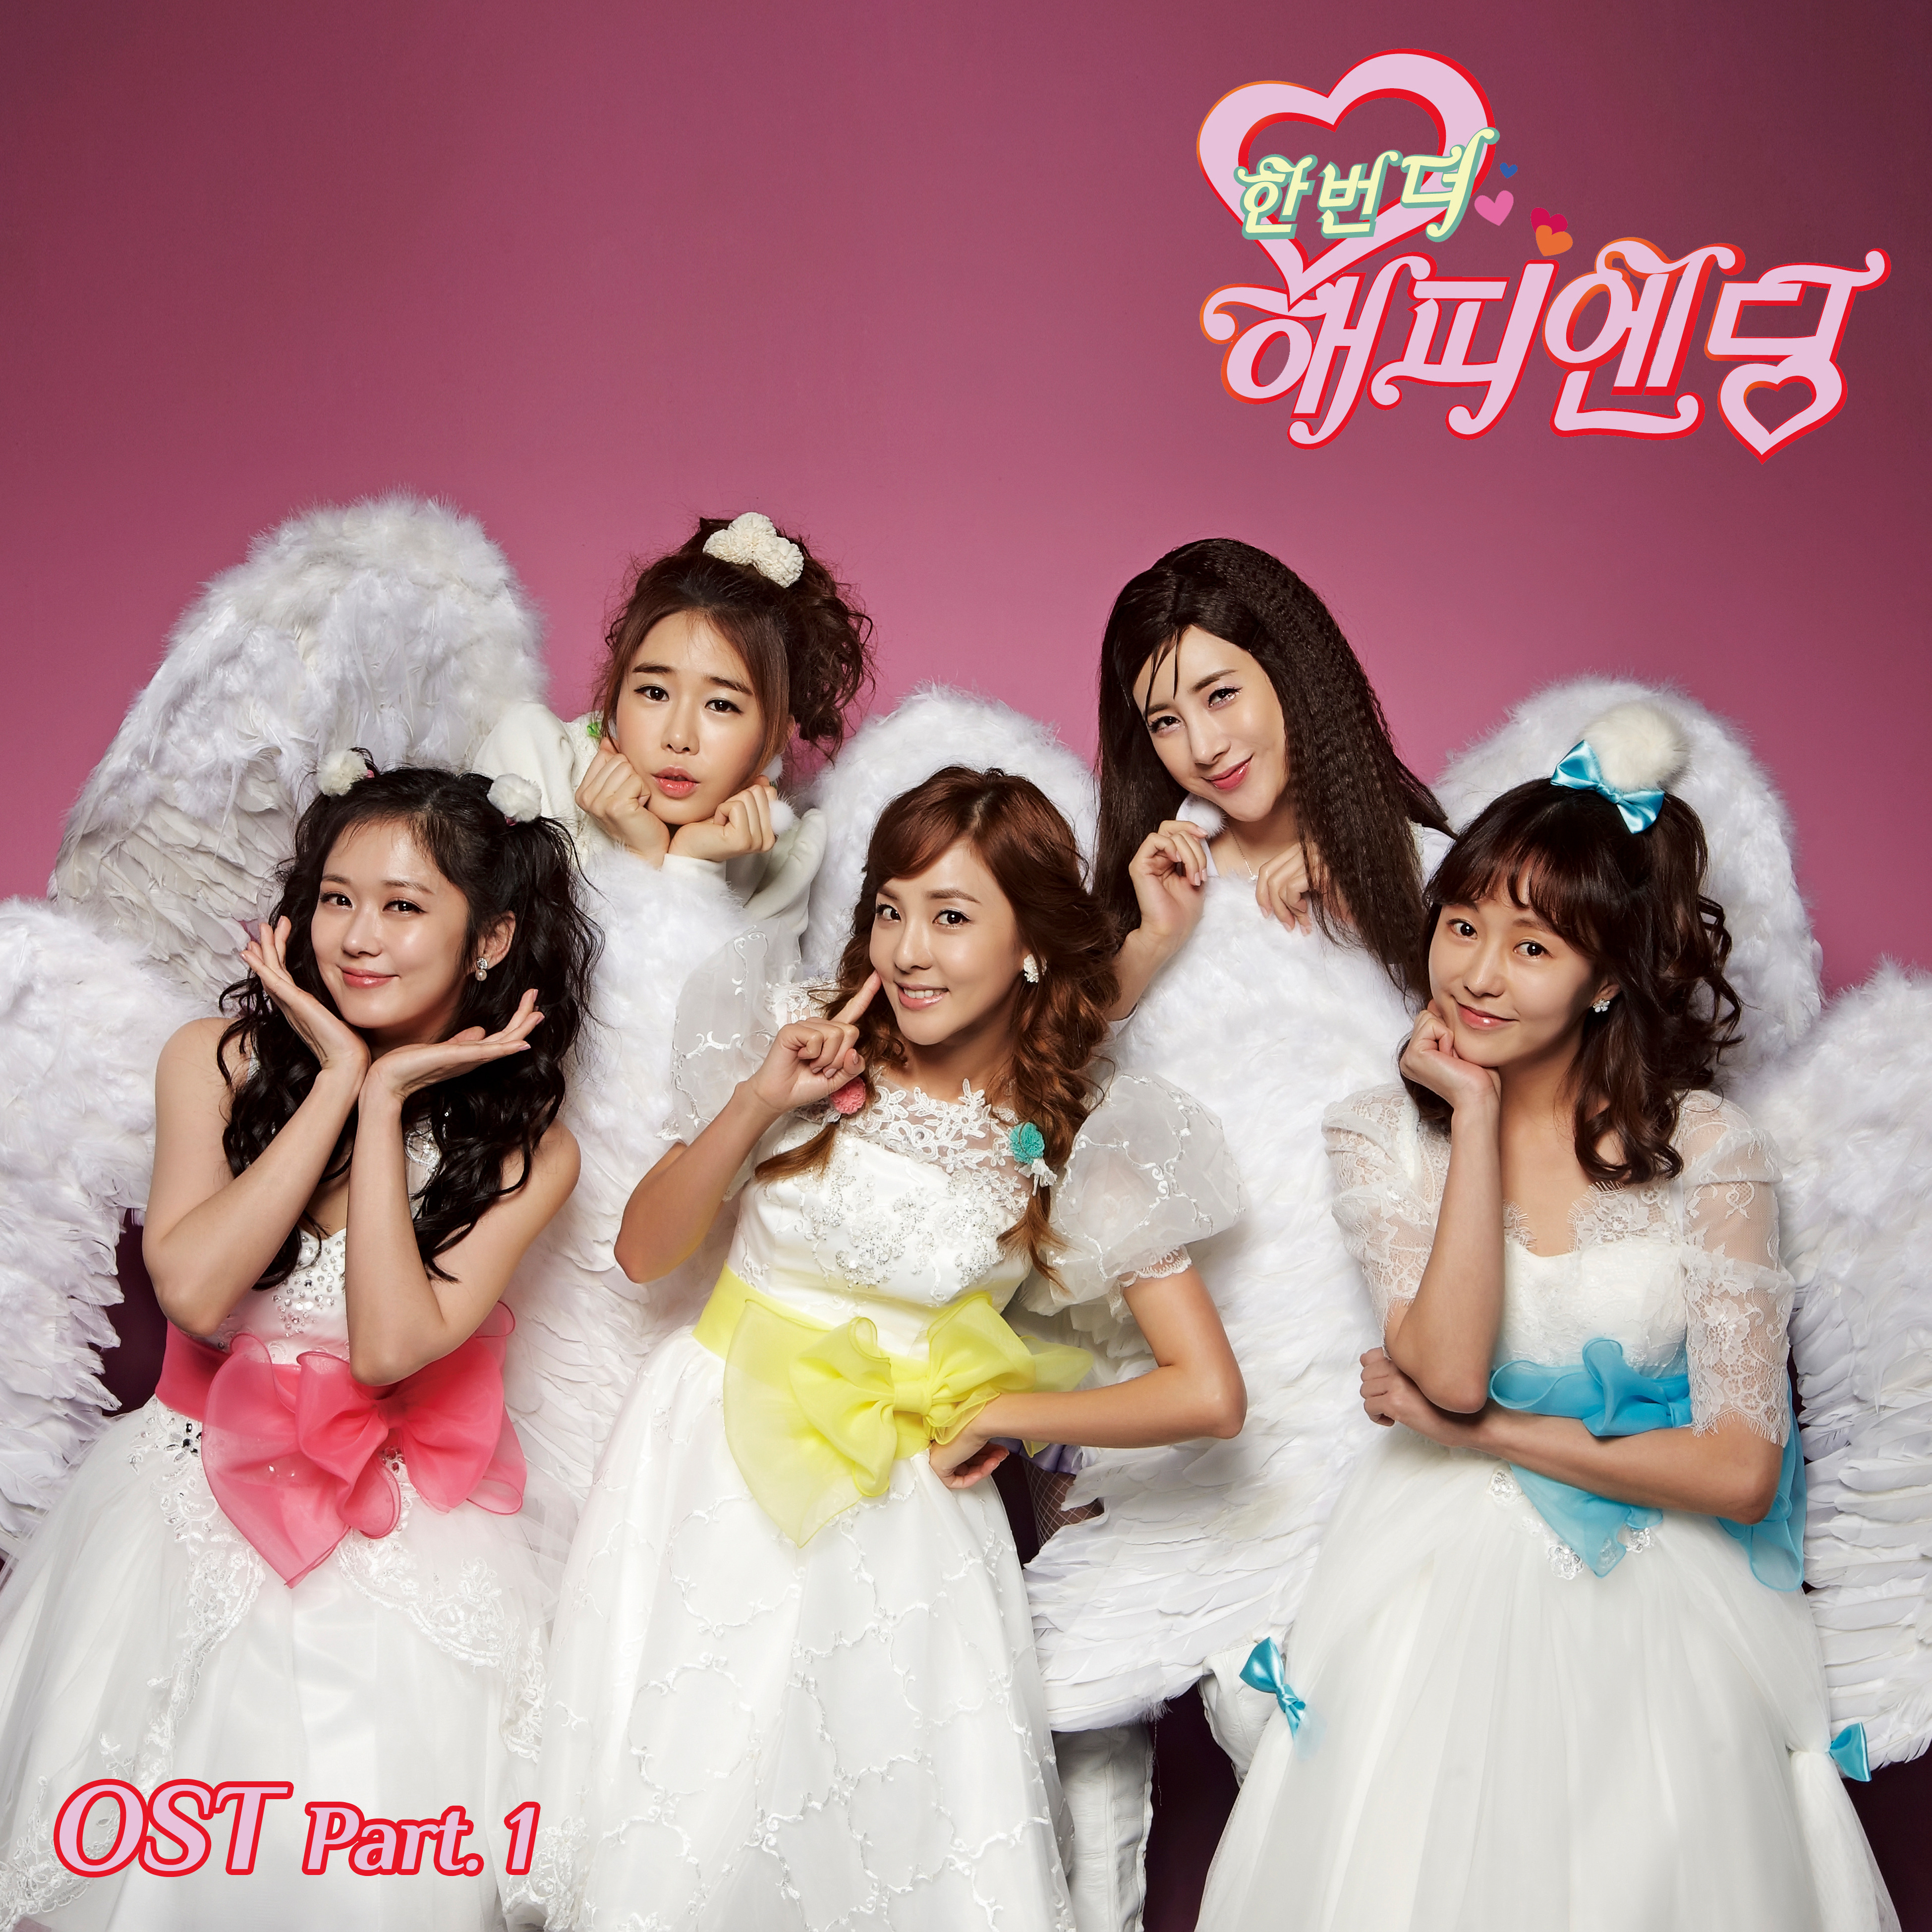 angels, one more happy ending, ost, mp3, download, free, kpopexplorer